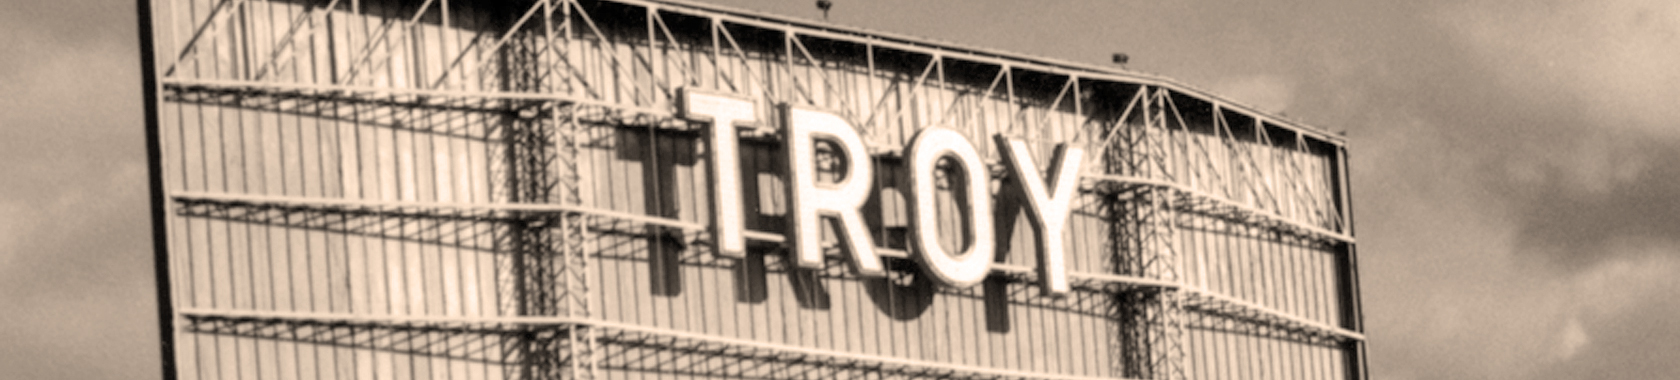 History of Troy